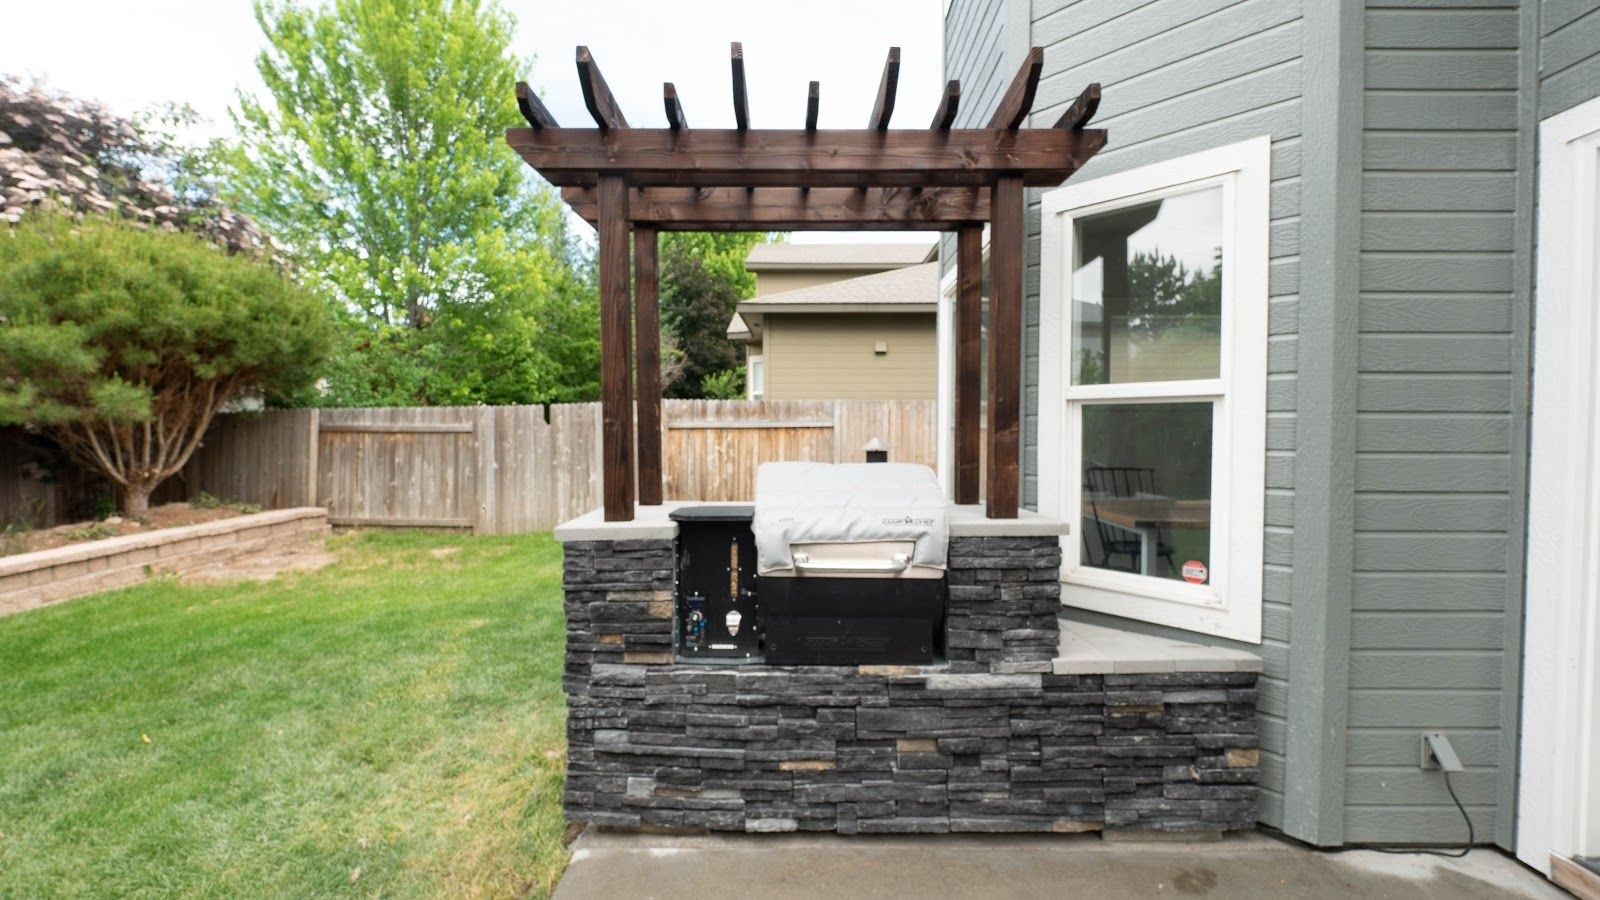 DIY BuiltIn Outdoor Grill Station in 2020 Outdoor grill